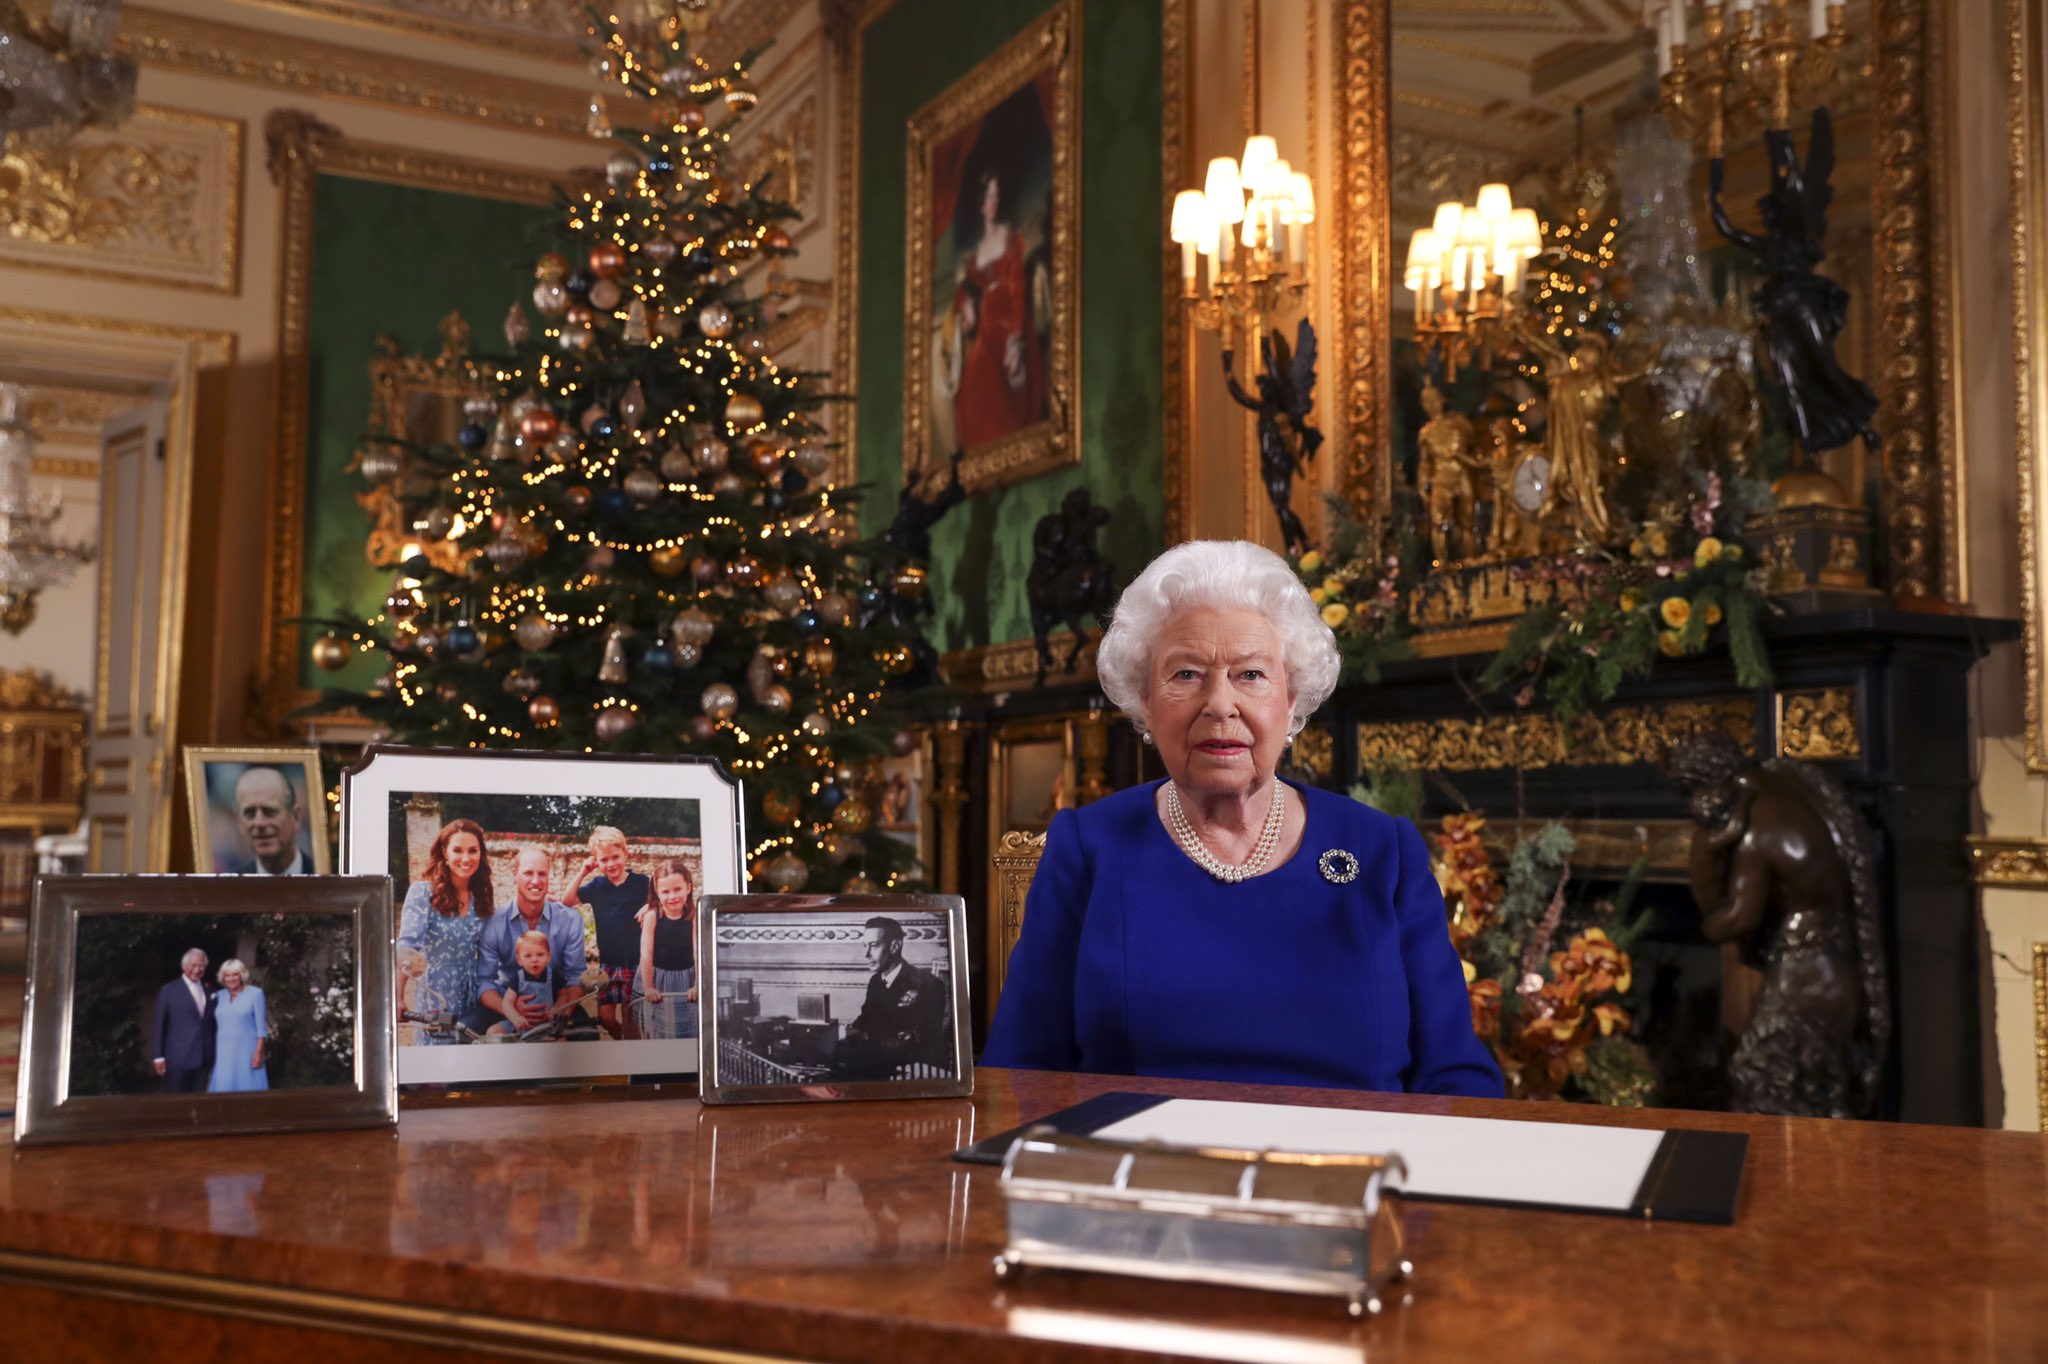 It has been a year full of challenges for the British Royal Family which is led by Queen Elizabeth II. Photo courtesy: Twitter/@RoyalFamily